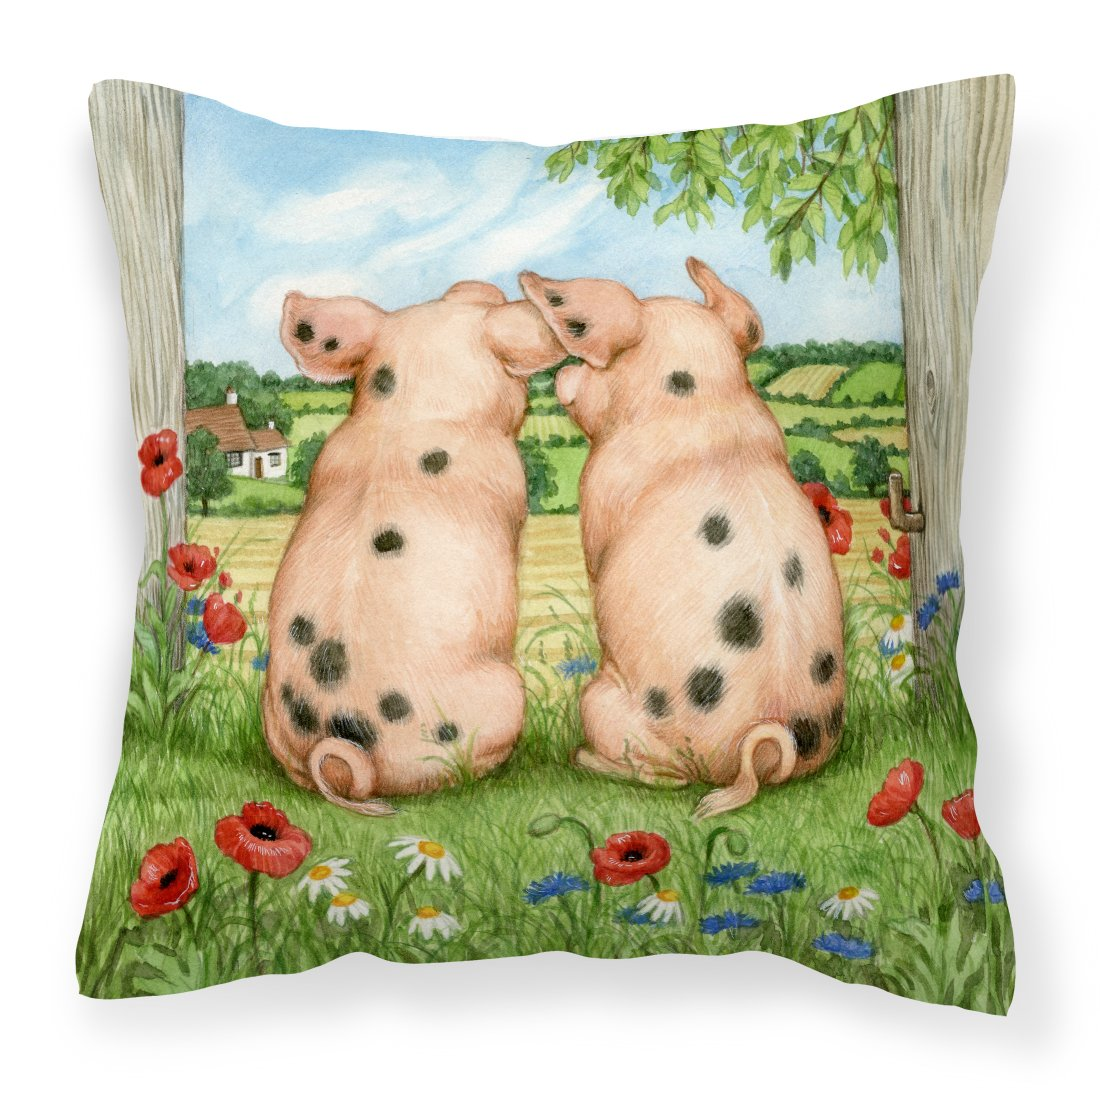 Buy this Pigs Side By Side by Debbie Cook Canvas Decorative Pillow